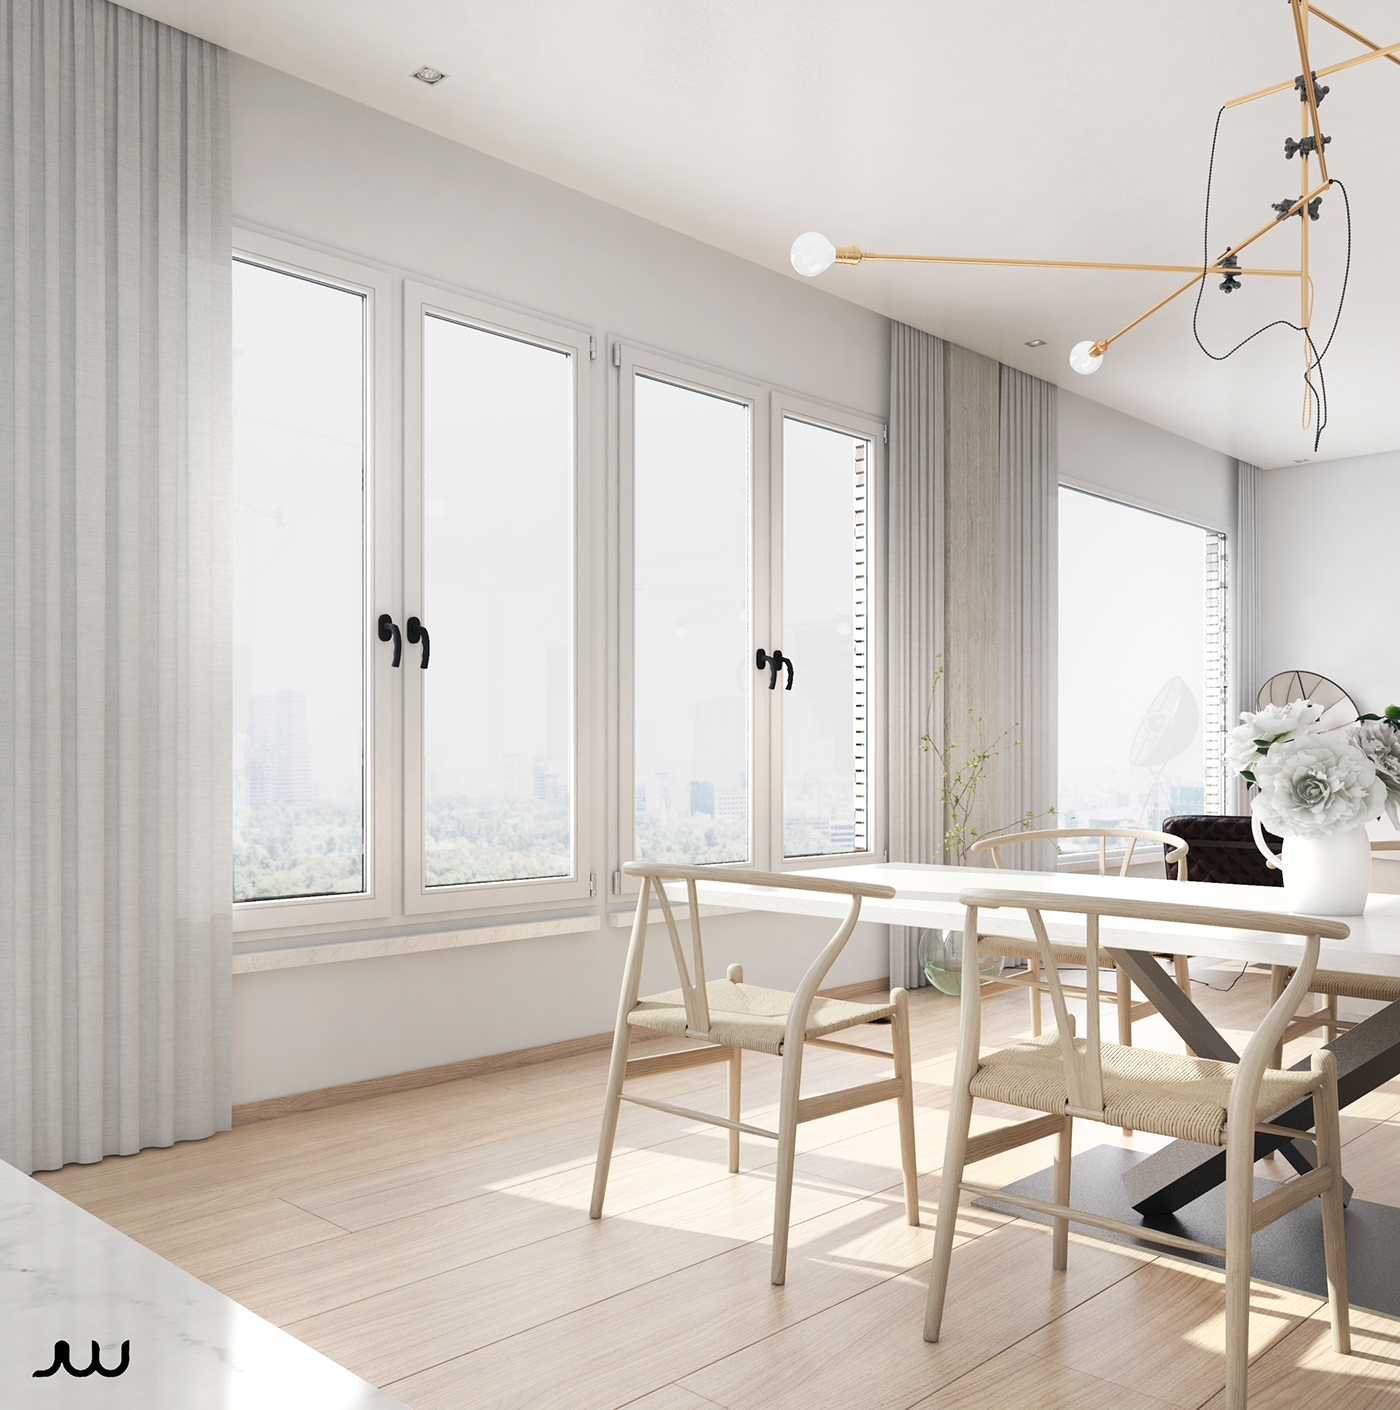 Central park view new york apartment cgi on behance for Central park apartments ny